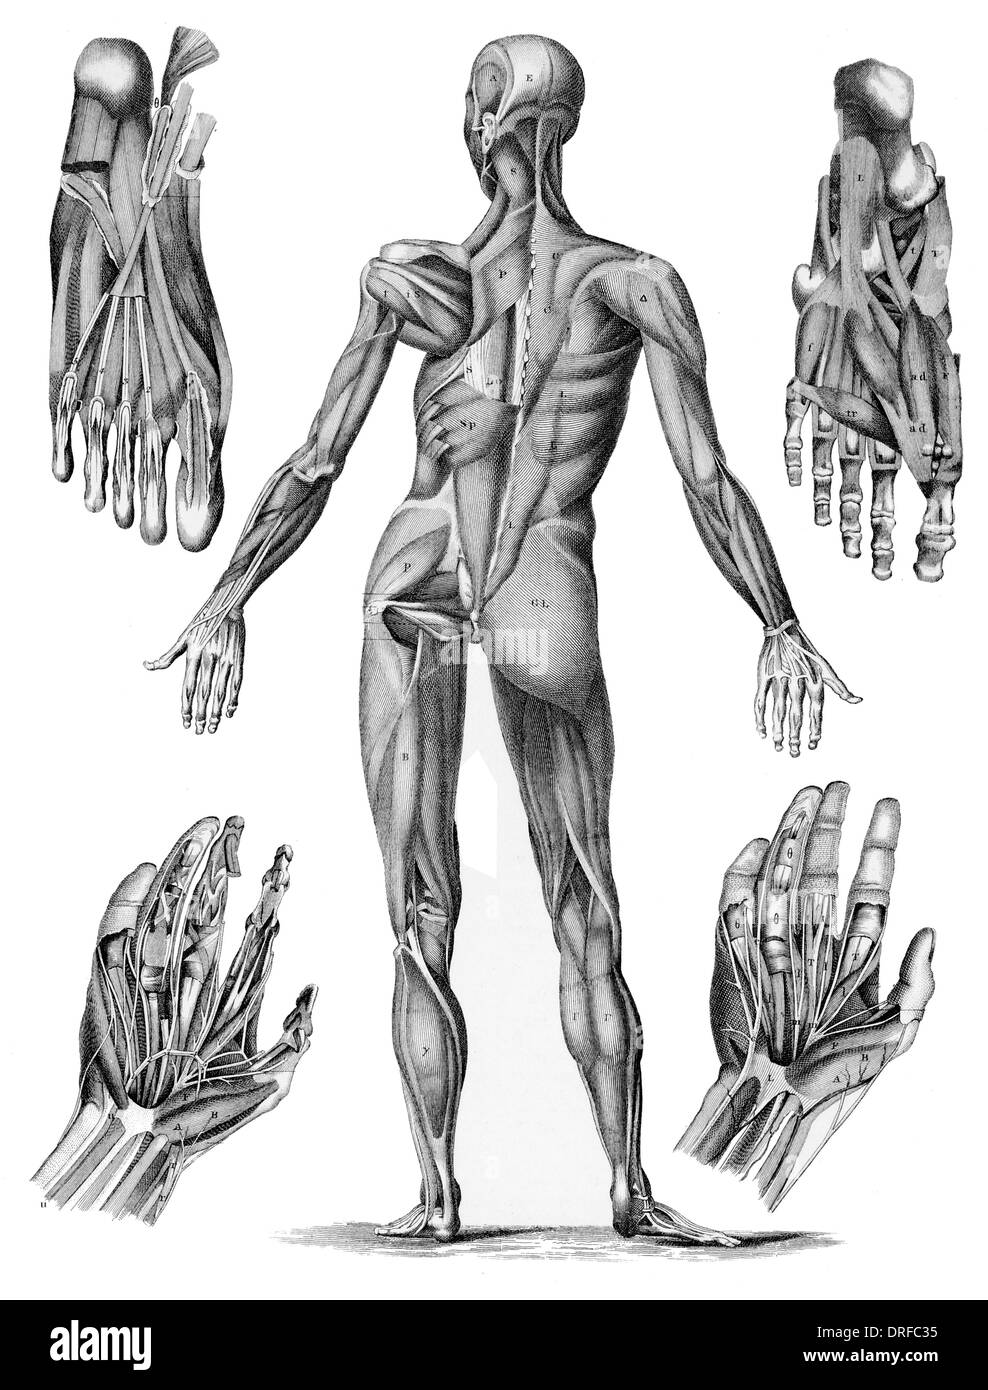 Anatomy Hands History Historical Stock Photos & Anatomy Hands ...